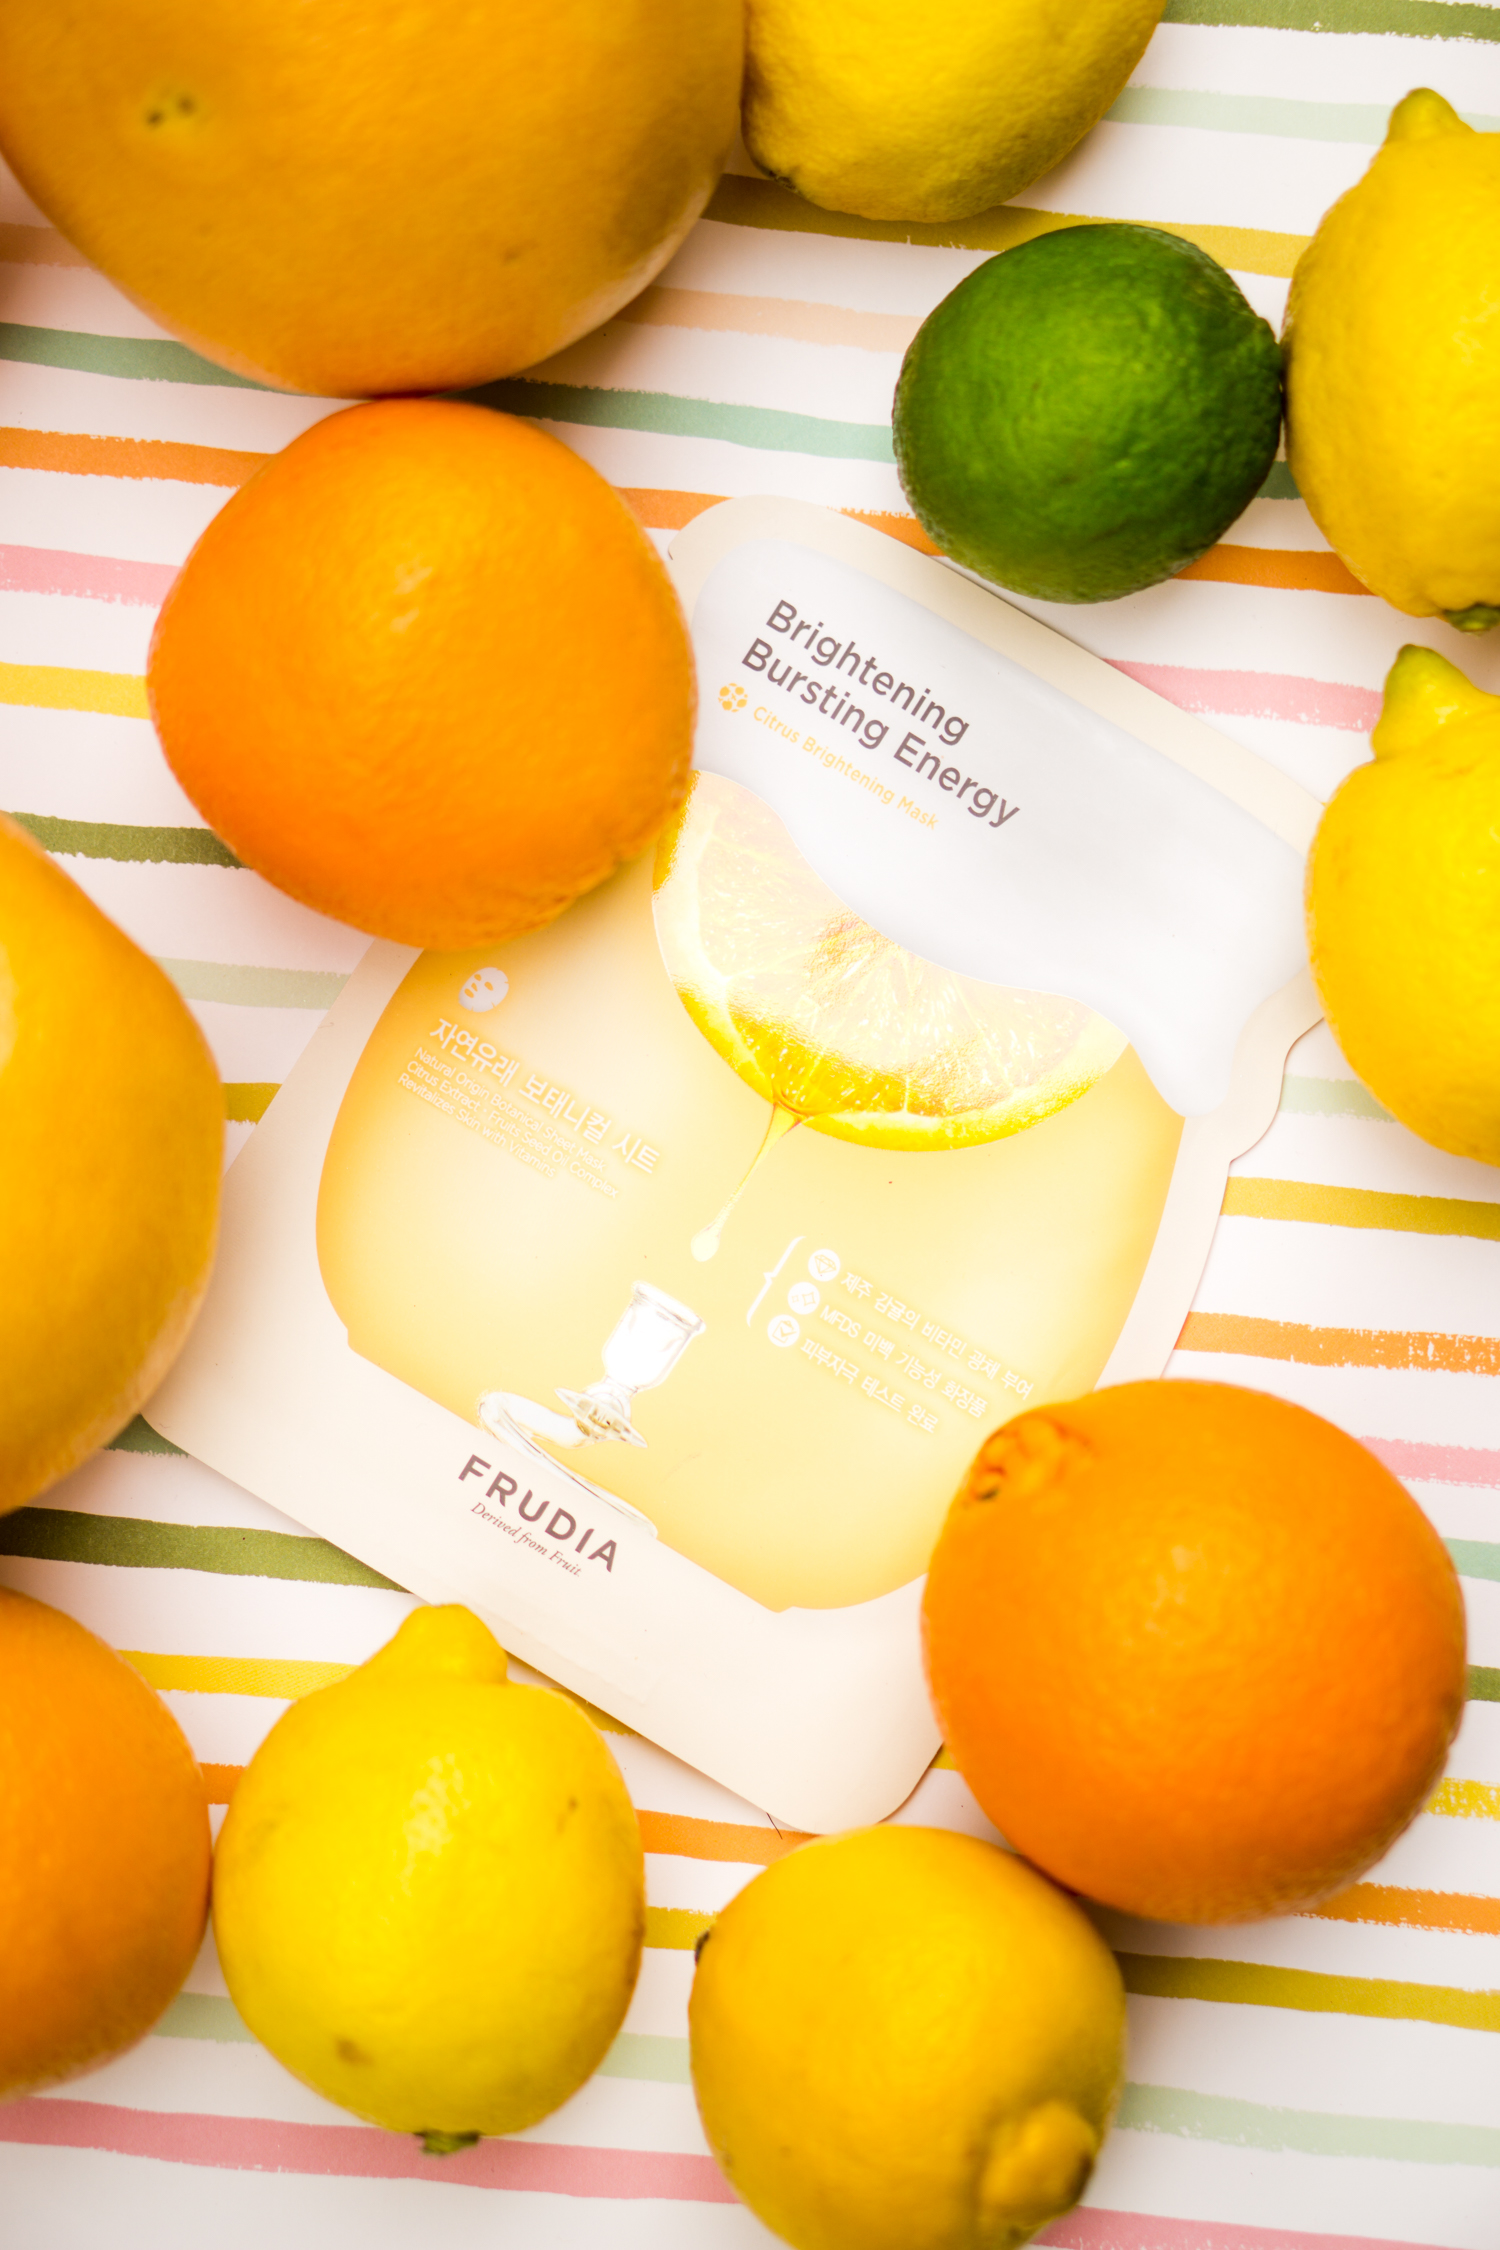 Frudia Brightening Bursting Energy Mask review